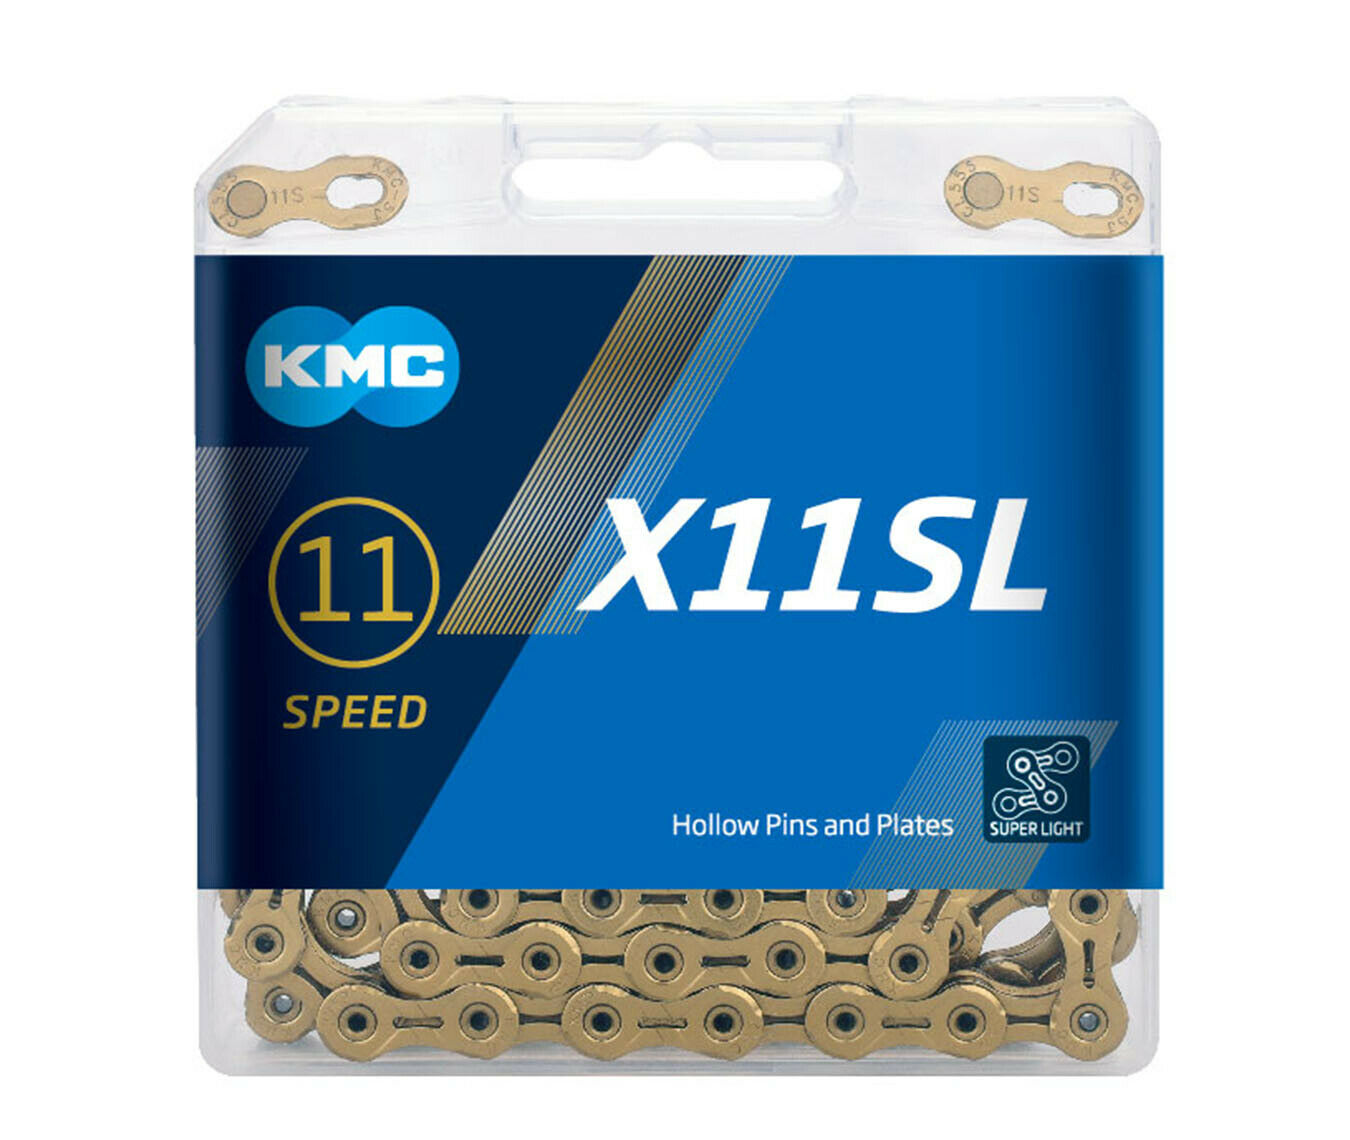 VH88 KMC X11SL Super Light Chain, gold, 11 speed, 118 links (2018 Edition)